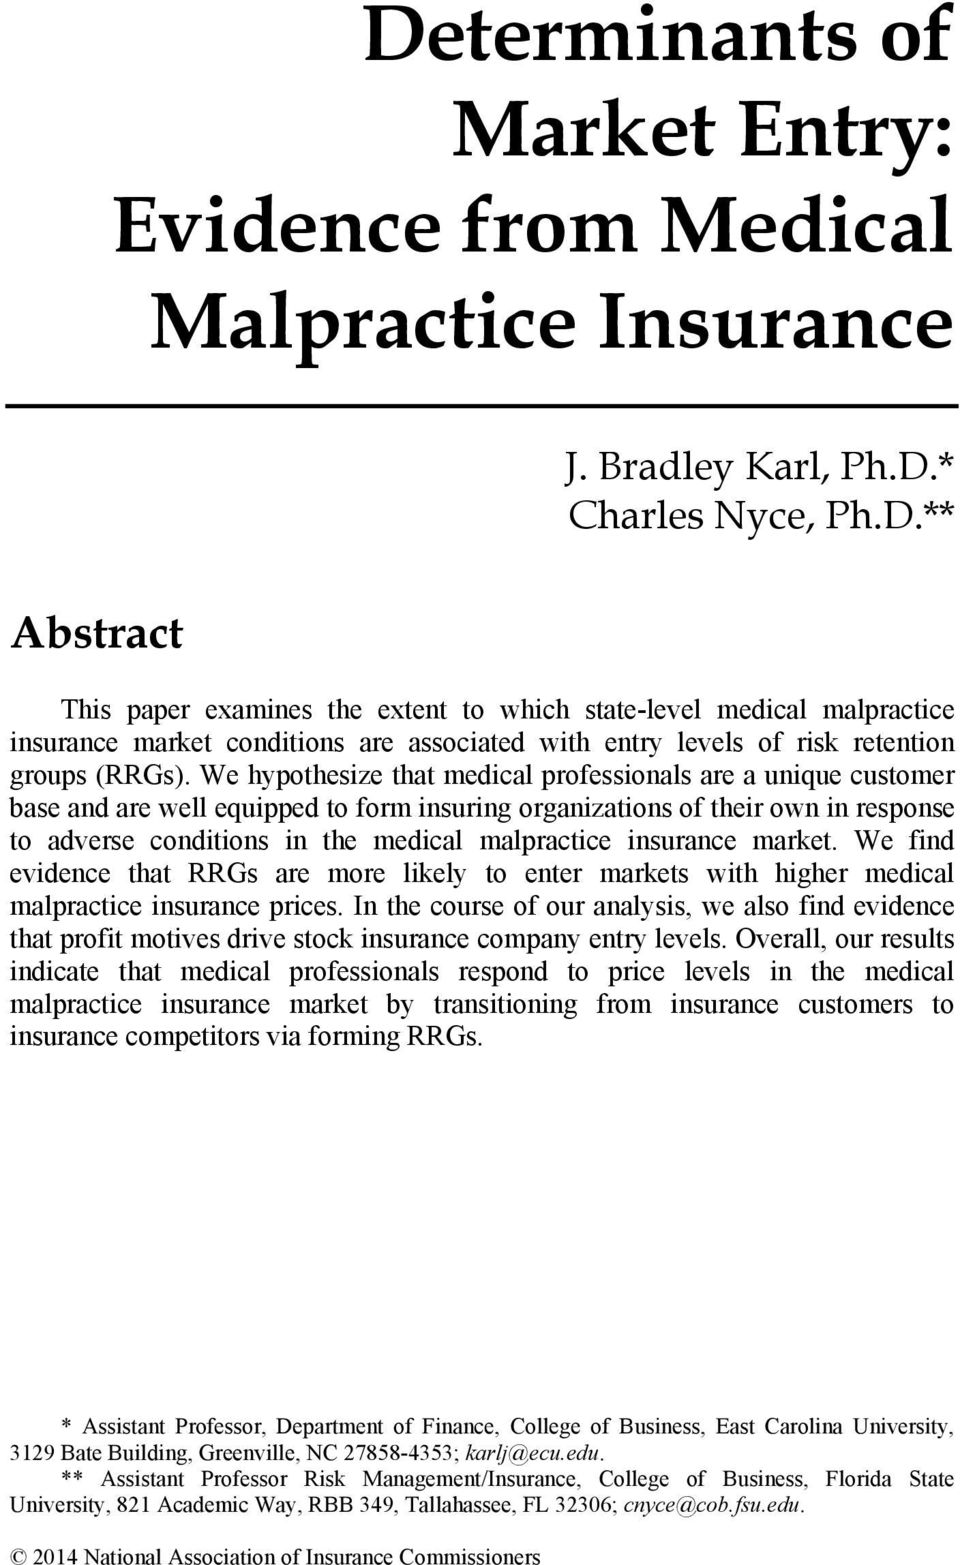 insurance market. We find evidence that RRGs are more likely to enter markets with higher medical malpractice insurance prices.